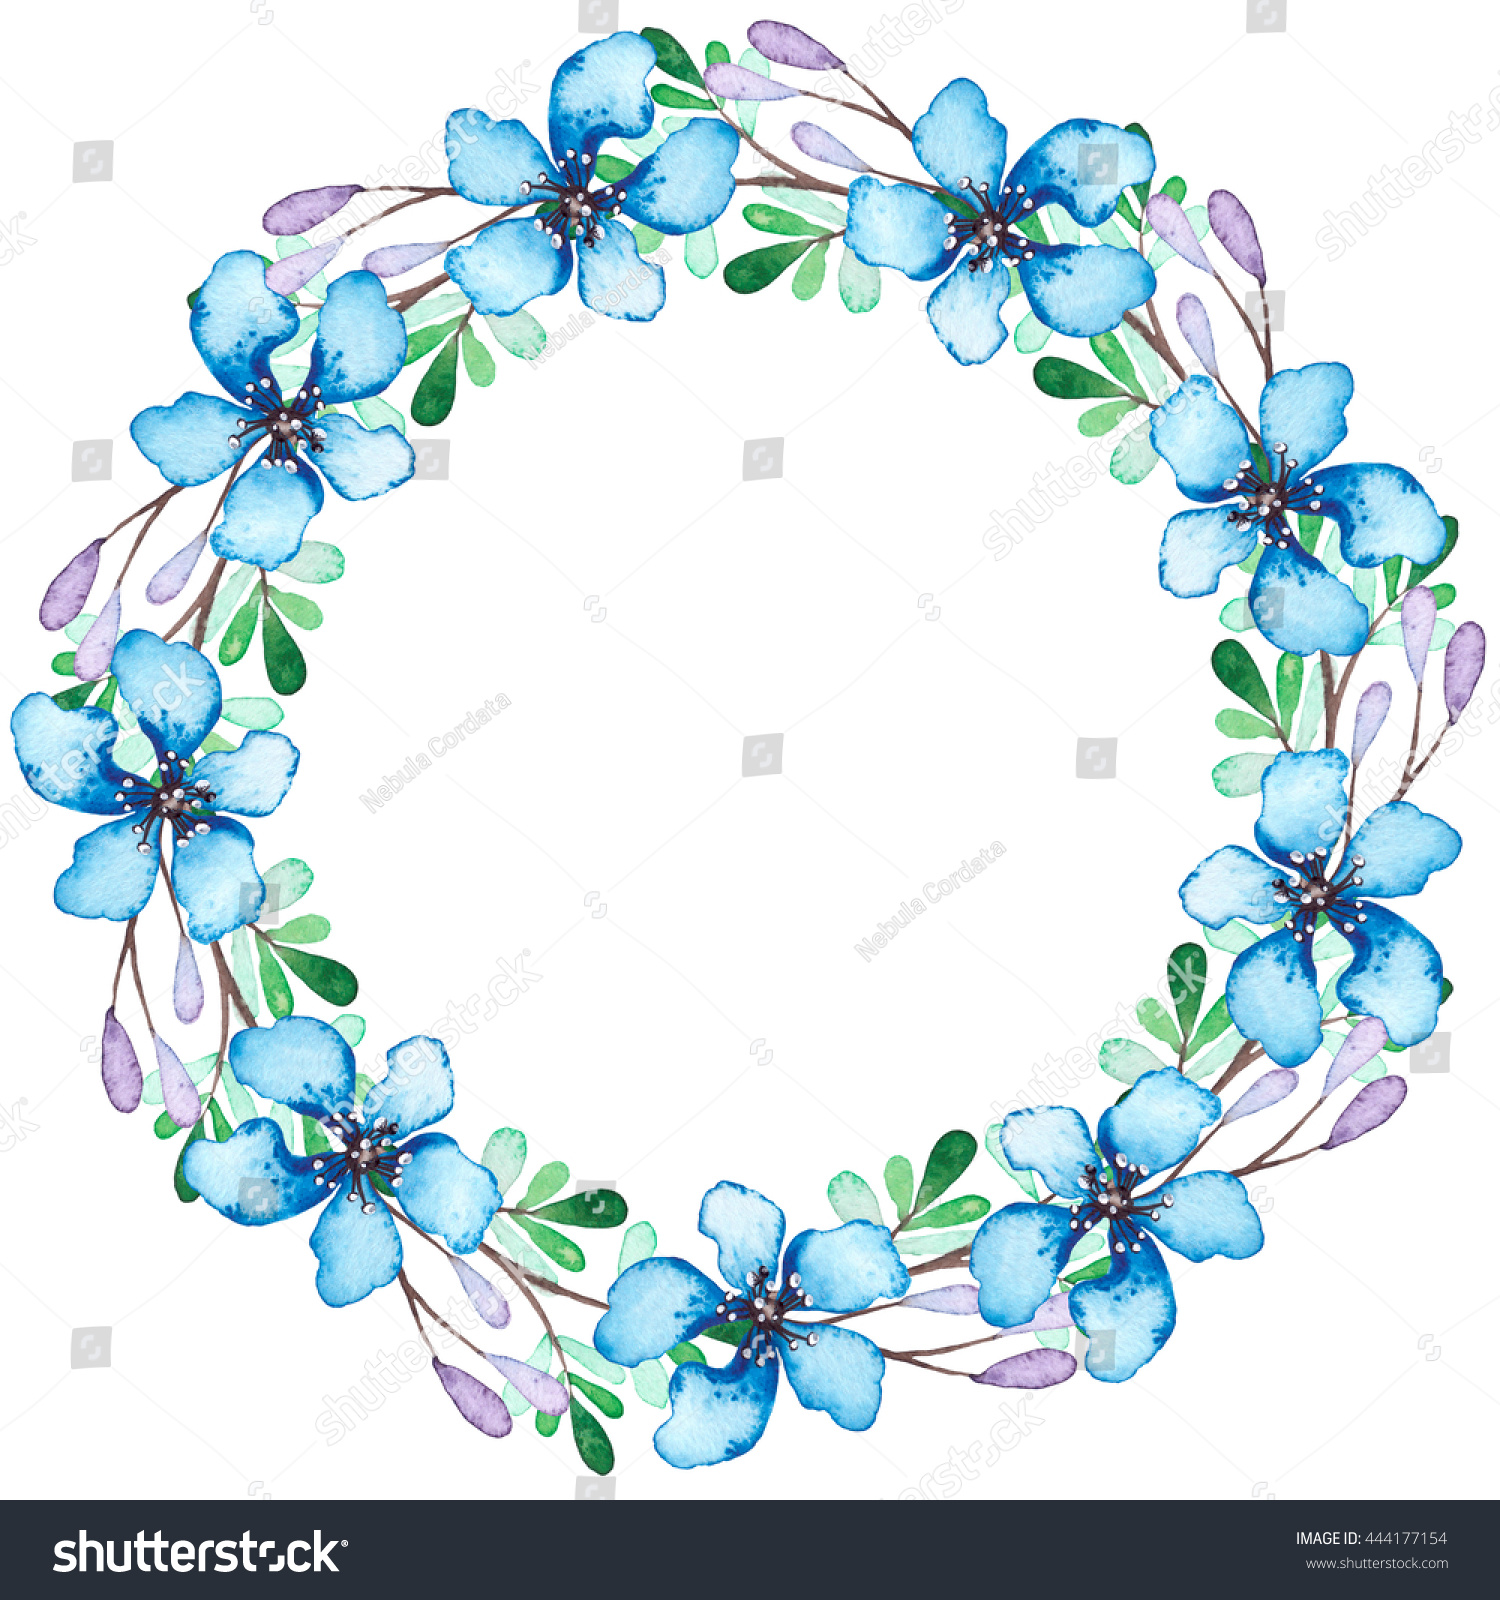 Wreath watercolor blue flowers green violet stock illustration wreath with watercolor blue flowers green and violet leaves izmirmasajfo Gallery